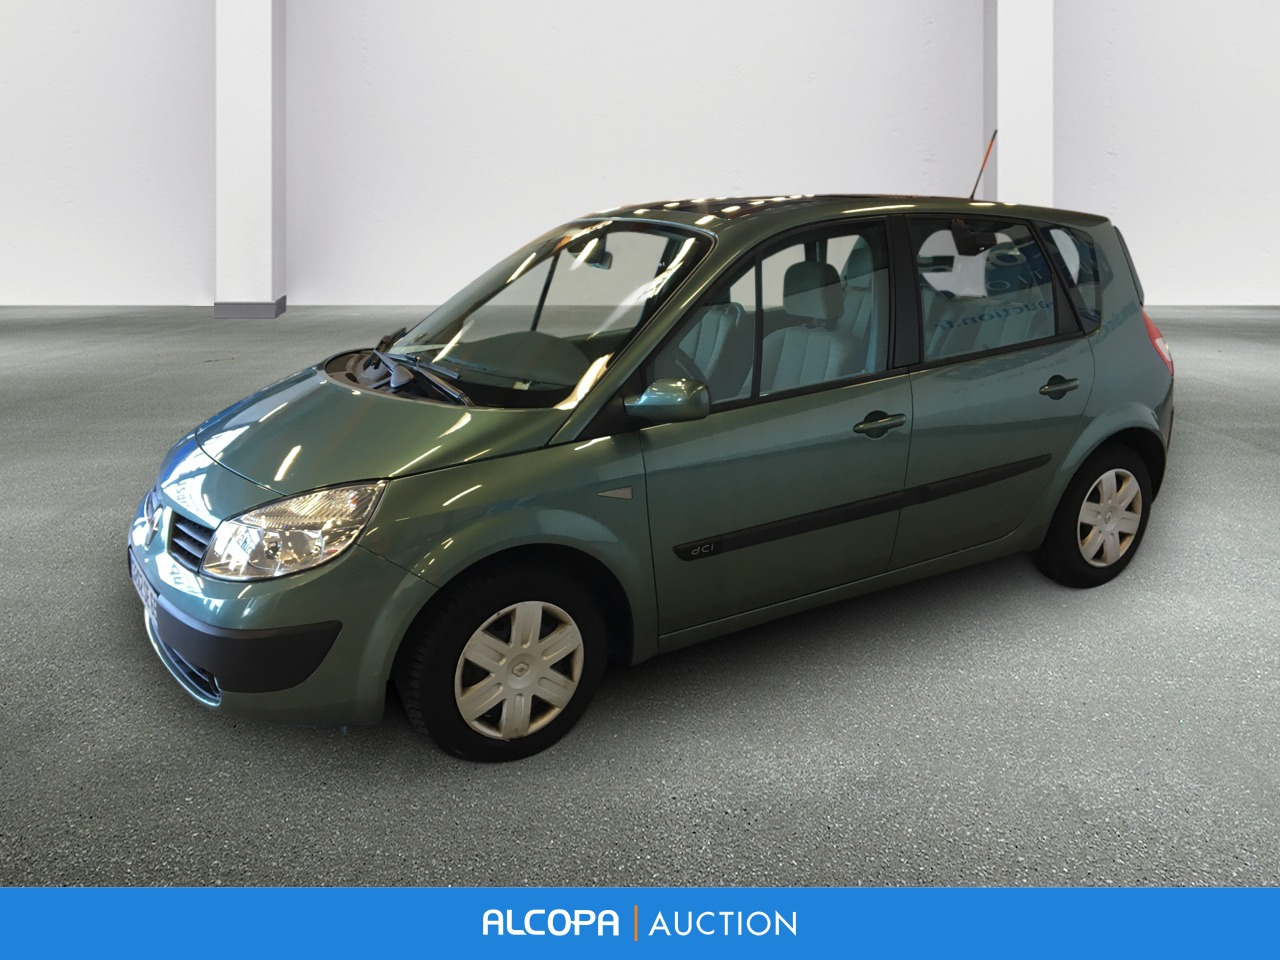 renault scenic ii scenic 1 5 dci 105 euro 4 confort expression alcopa auction. Black Bedroom Furniture Sets. Home Design Ideas